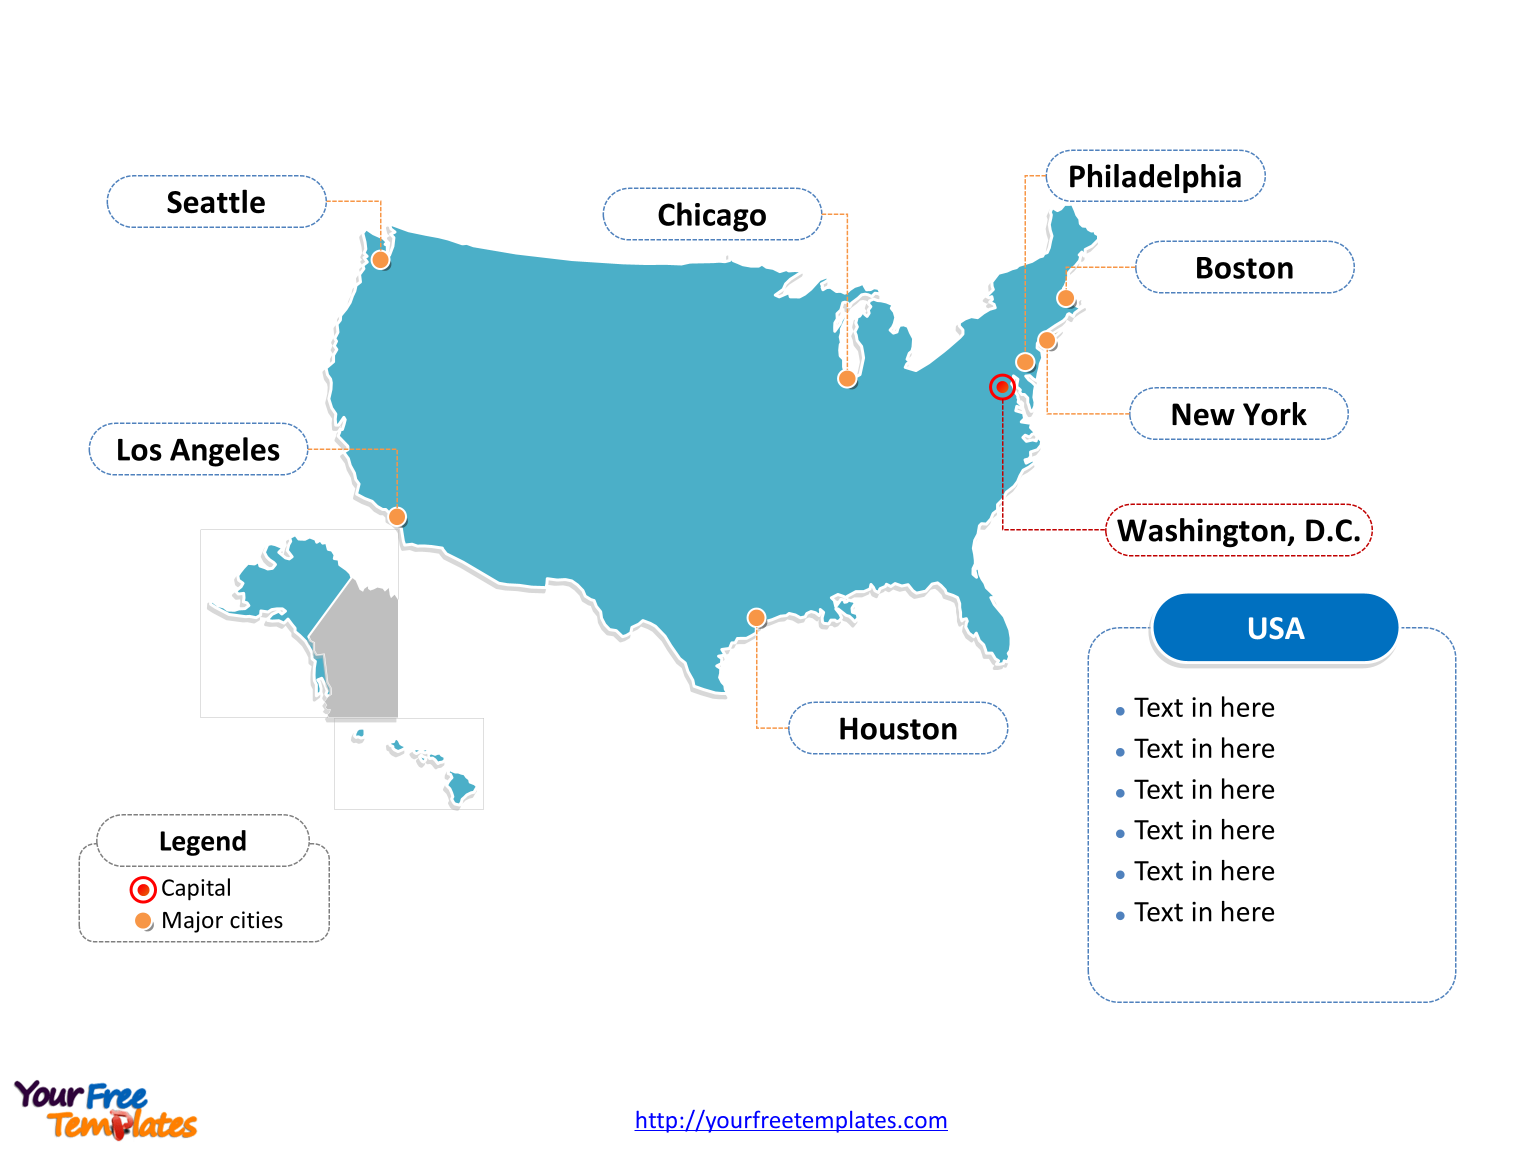 Free USA PowerPoint Map Free PowerPoint Templates - Texas map outline with cities